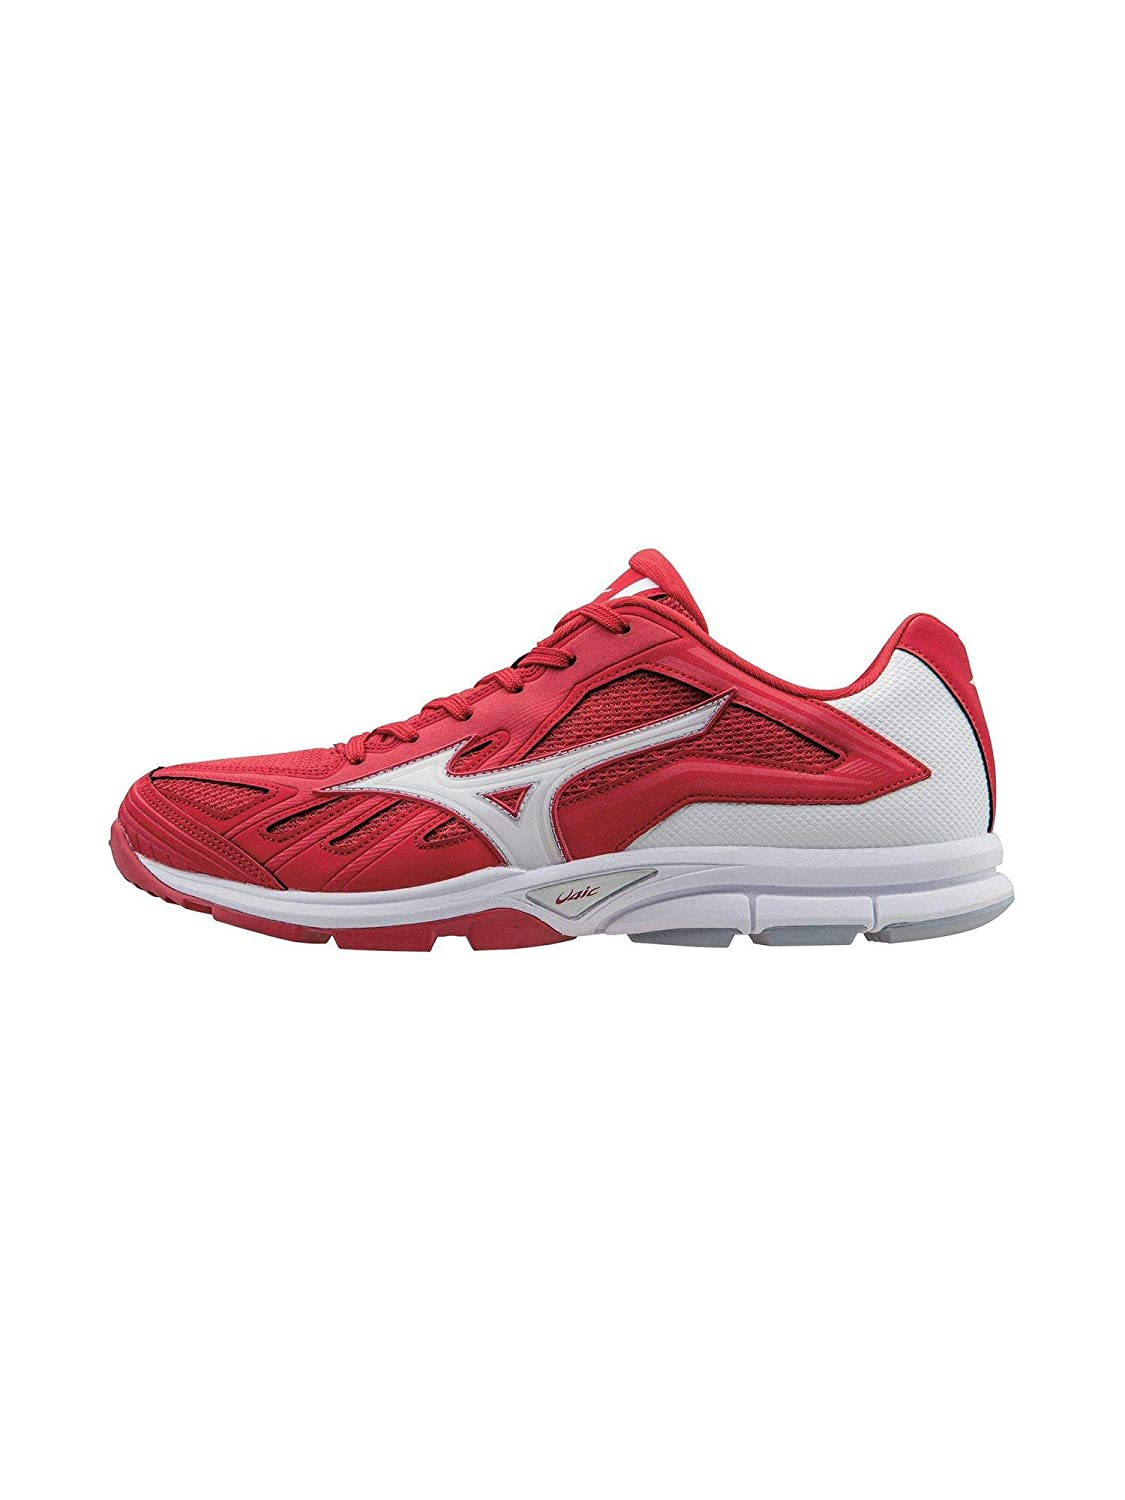 red mizuno turf shoes